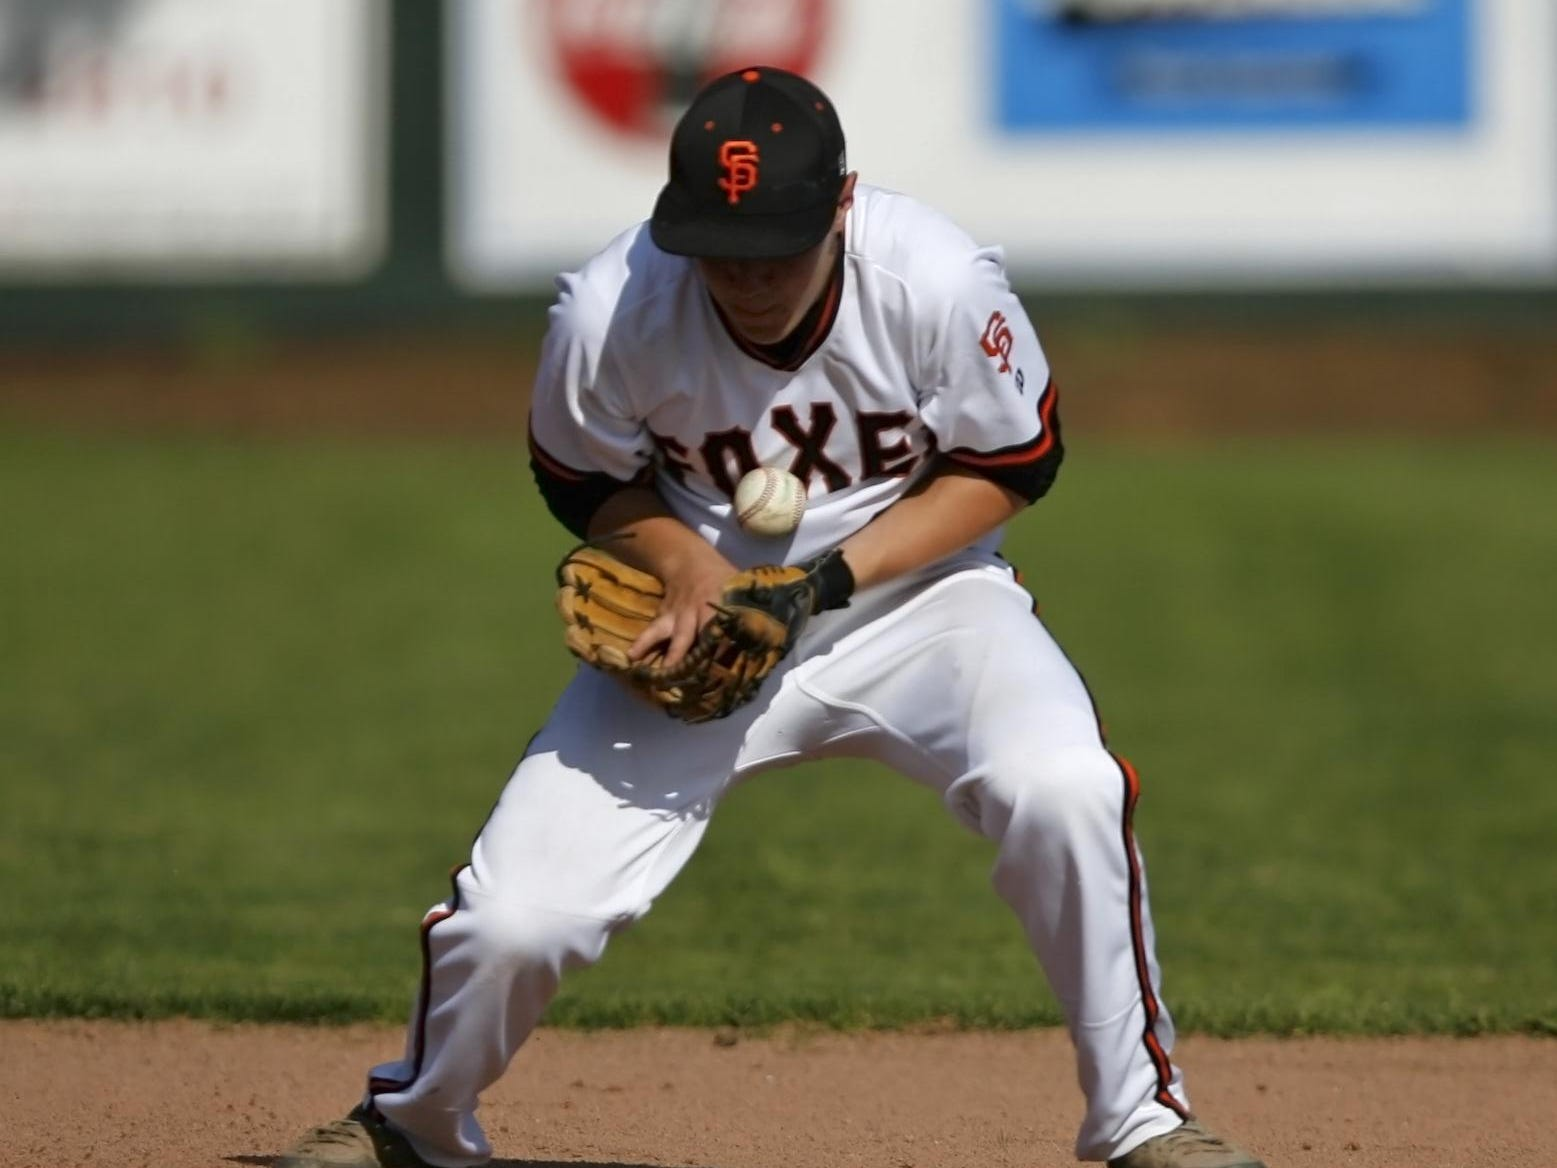 Silverton shortstop Grant Roth stops a ground ball in the top of the third inning of Silverton's 9-2 loss in a Mid-Willamette Conference baseball game, at Silverton, on Wednesday, Apr. 30, 2914.